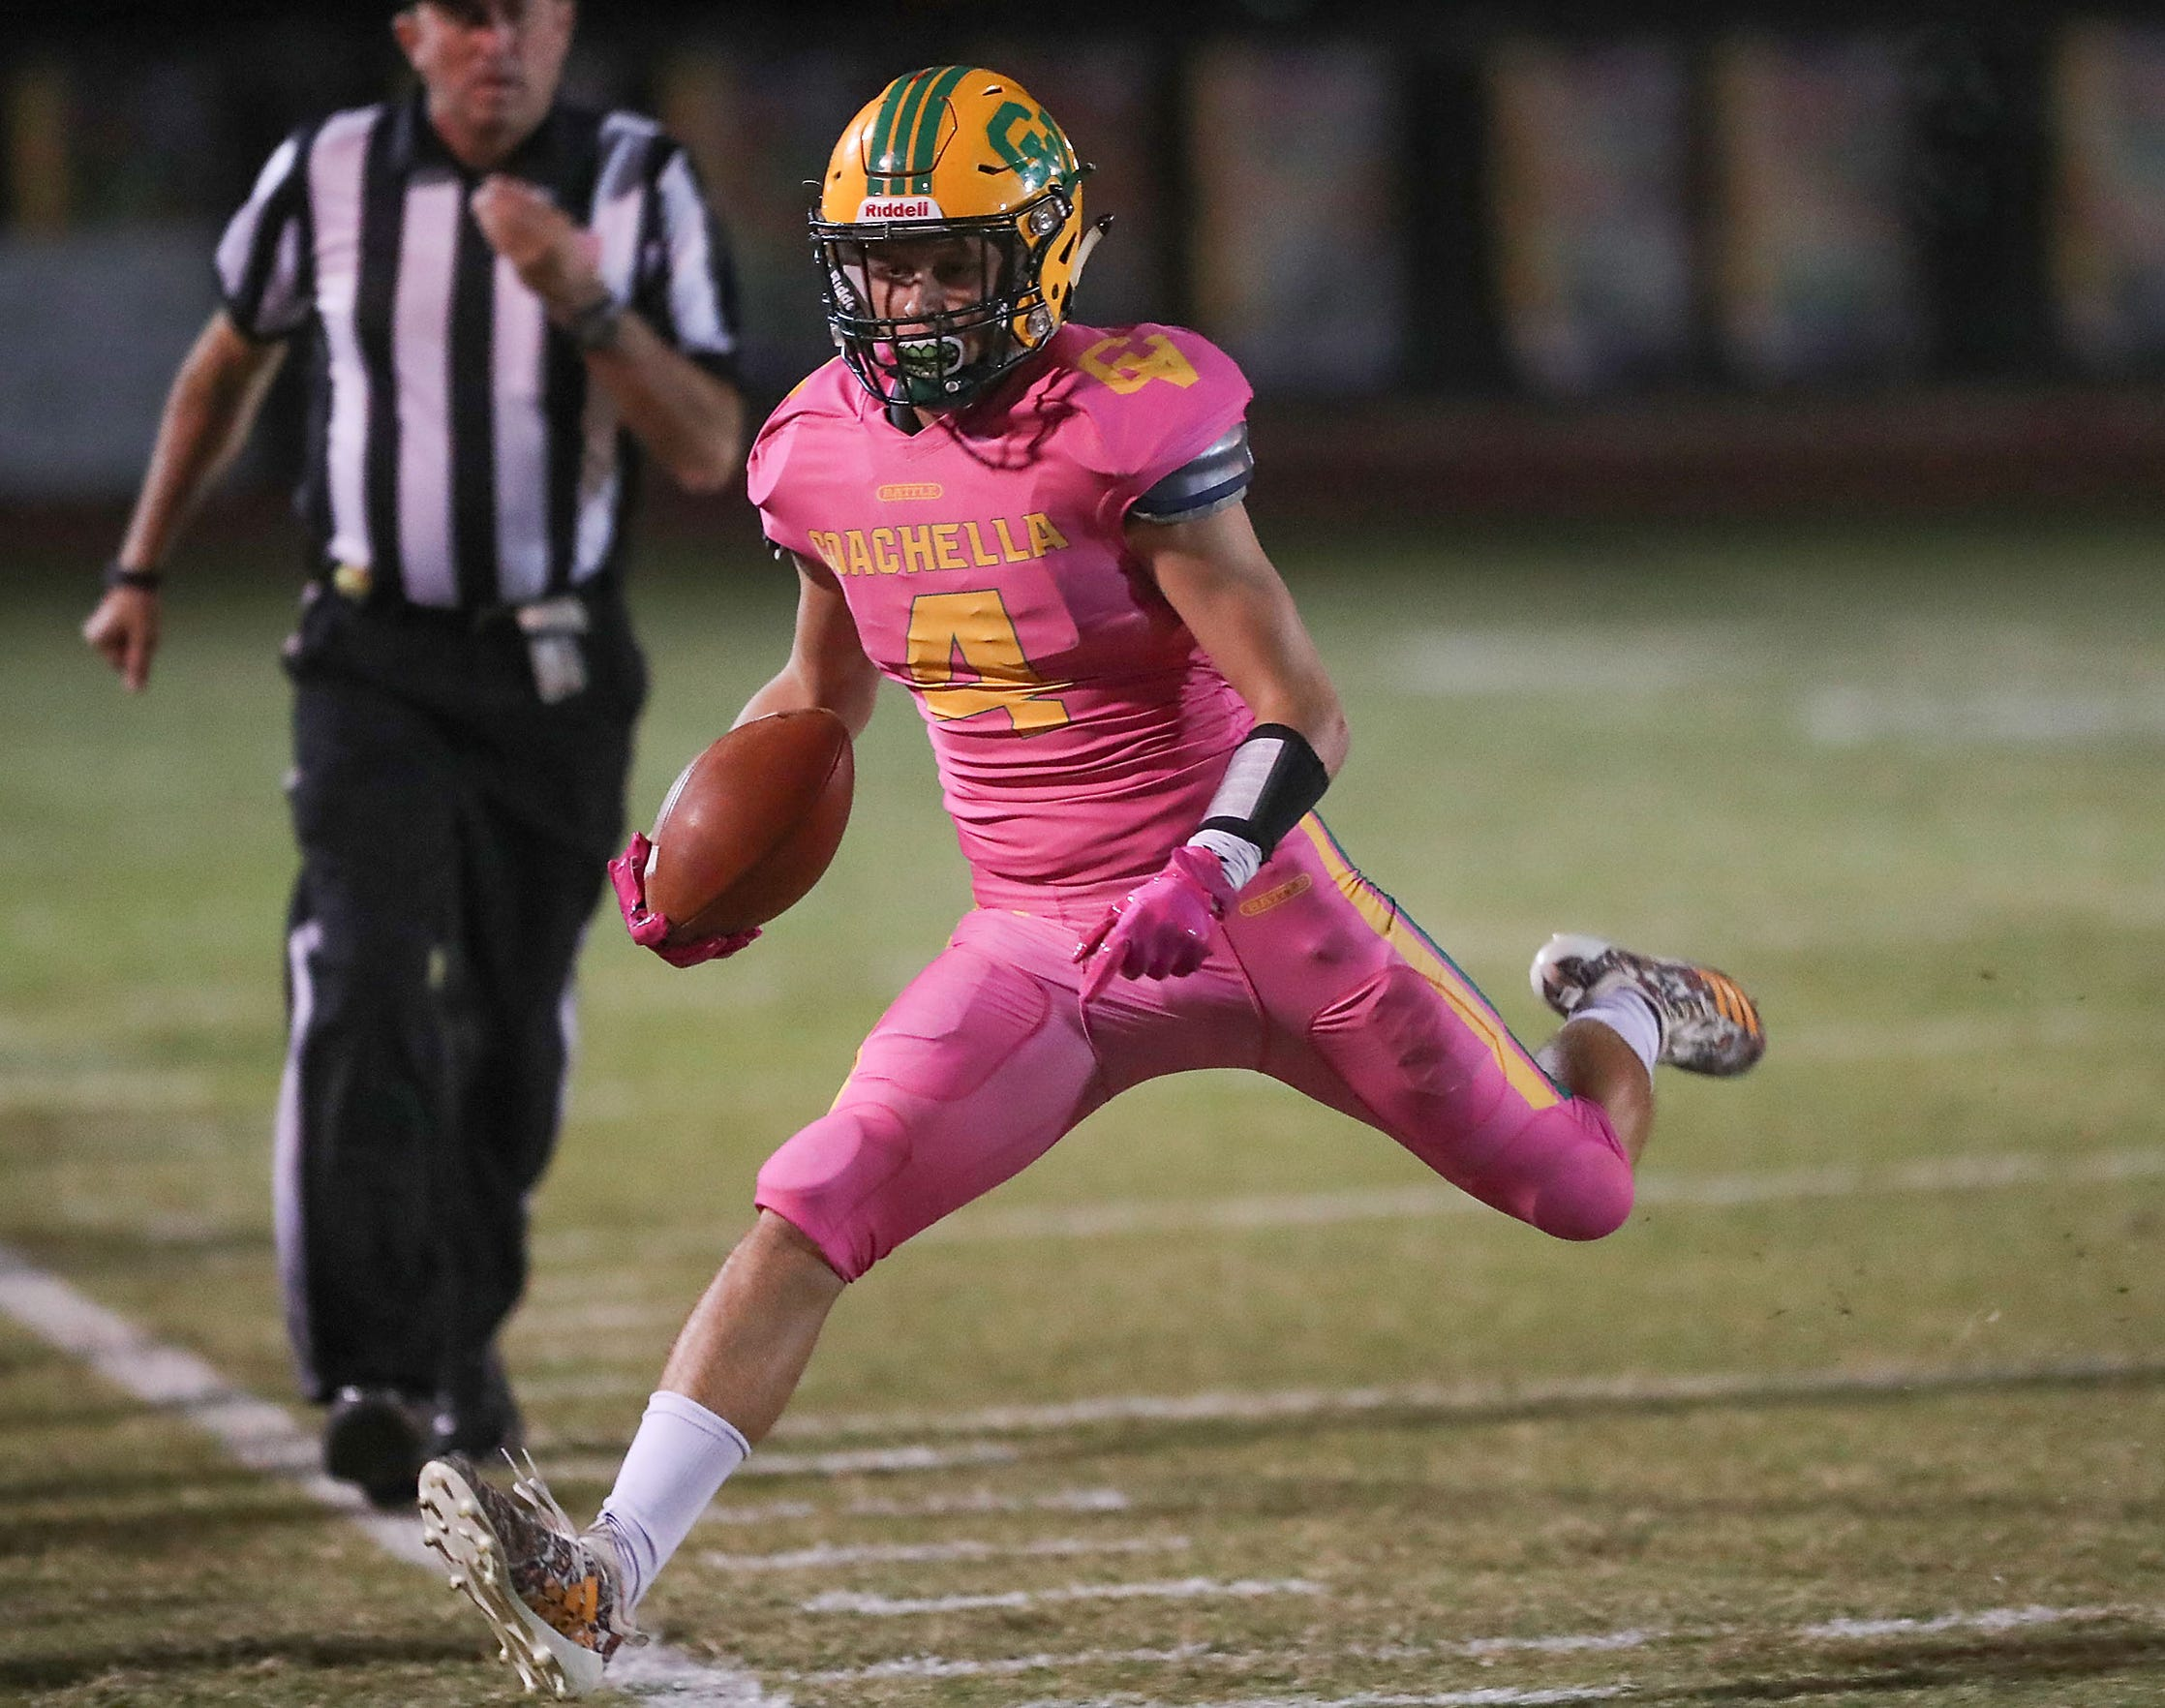 Angelo Fitzgerald of Coachella Valley runs for a first down against Desert Hot Springs, October 19, 2018.